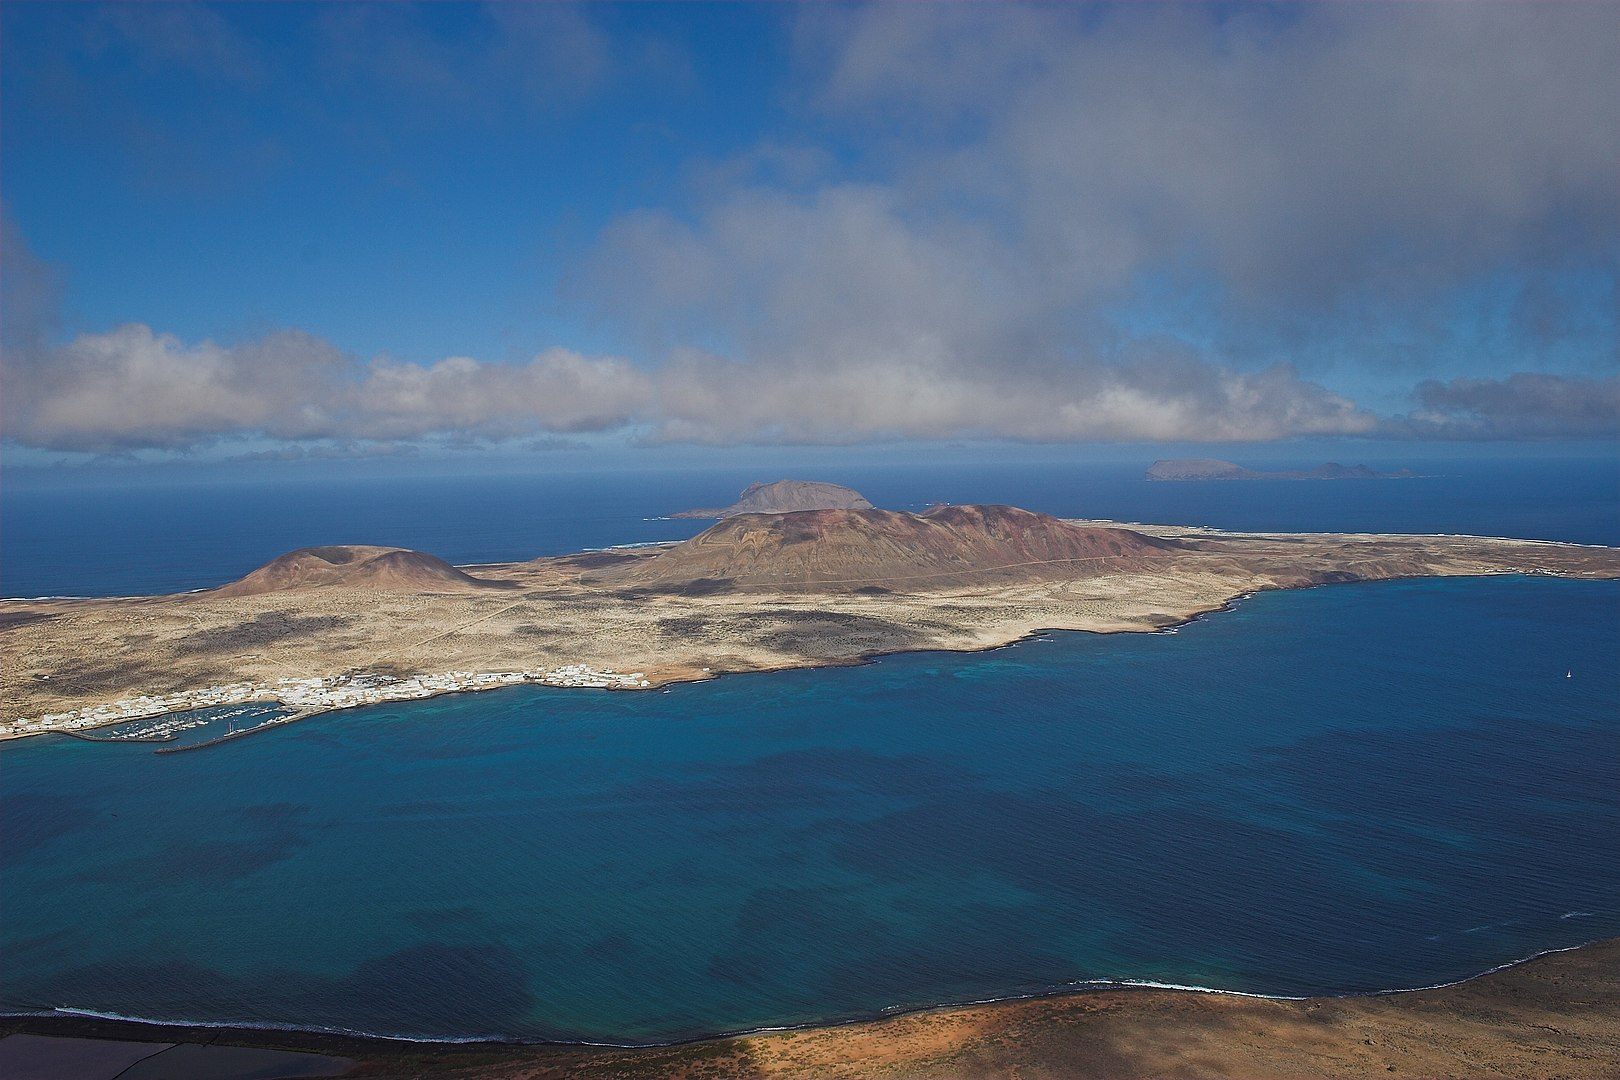 https://upload.wikimedia.org/wikipedia/commons/thumb/d/da/LaGraciosa_from_MiradorDelRio.jpg/1620px-LaGraciosa_from_MiradorDelRio.jpg